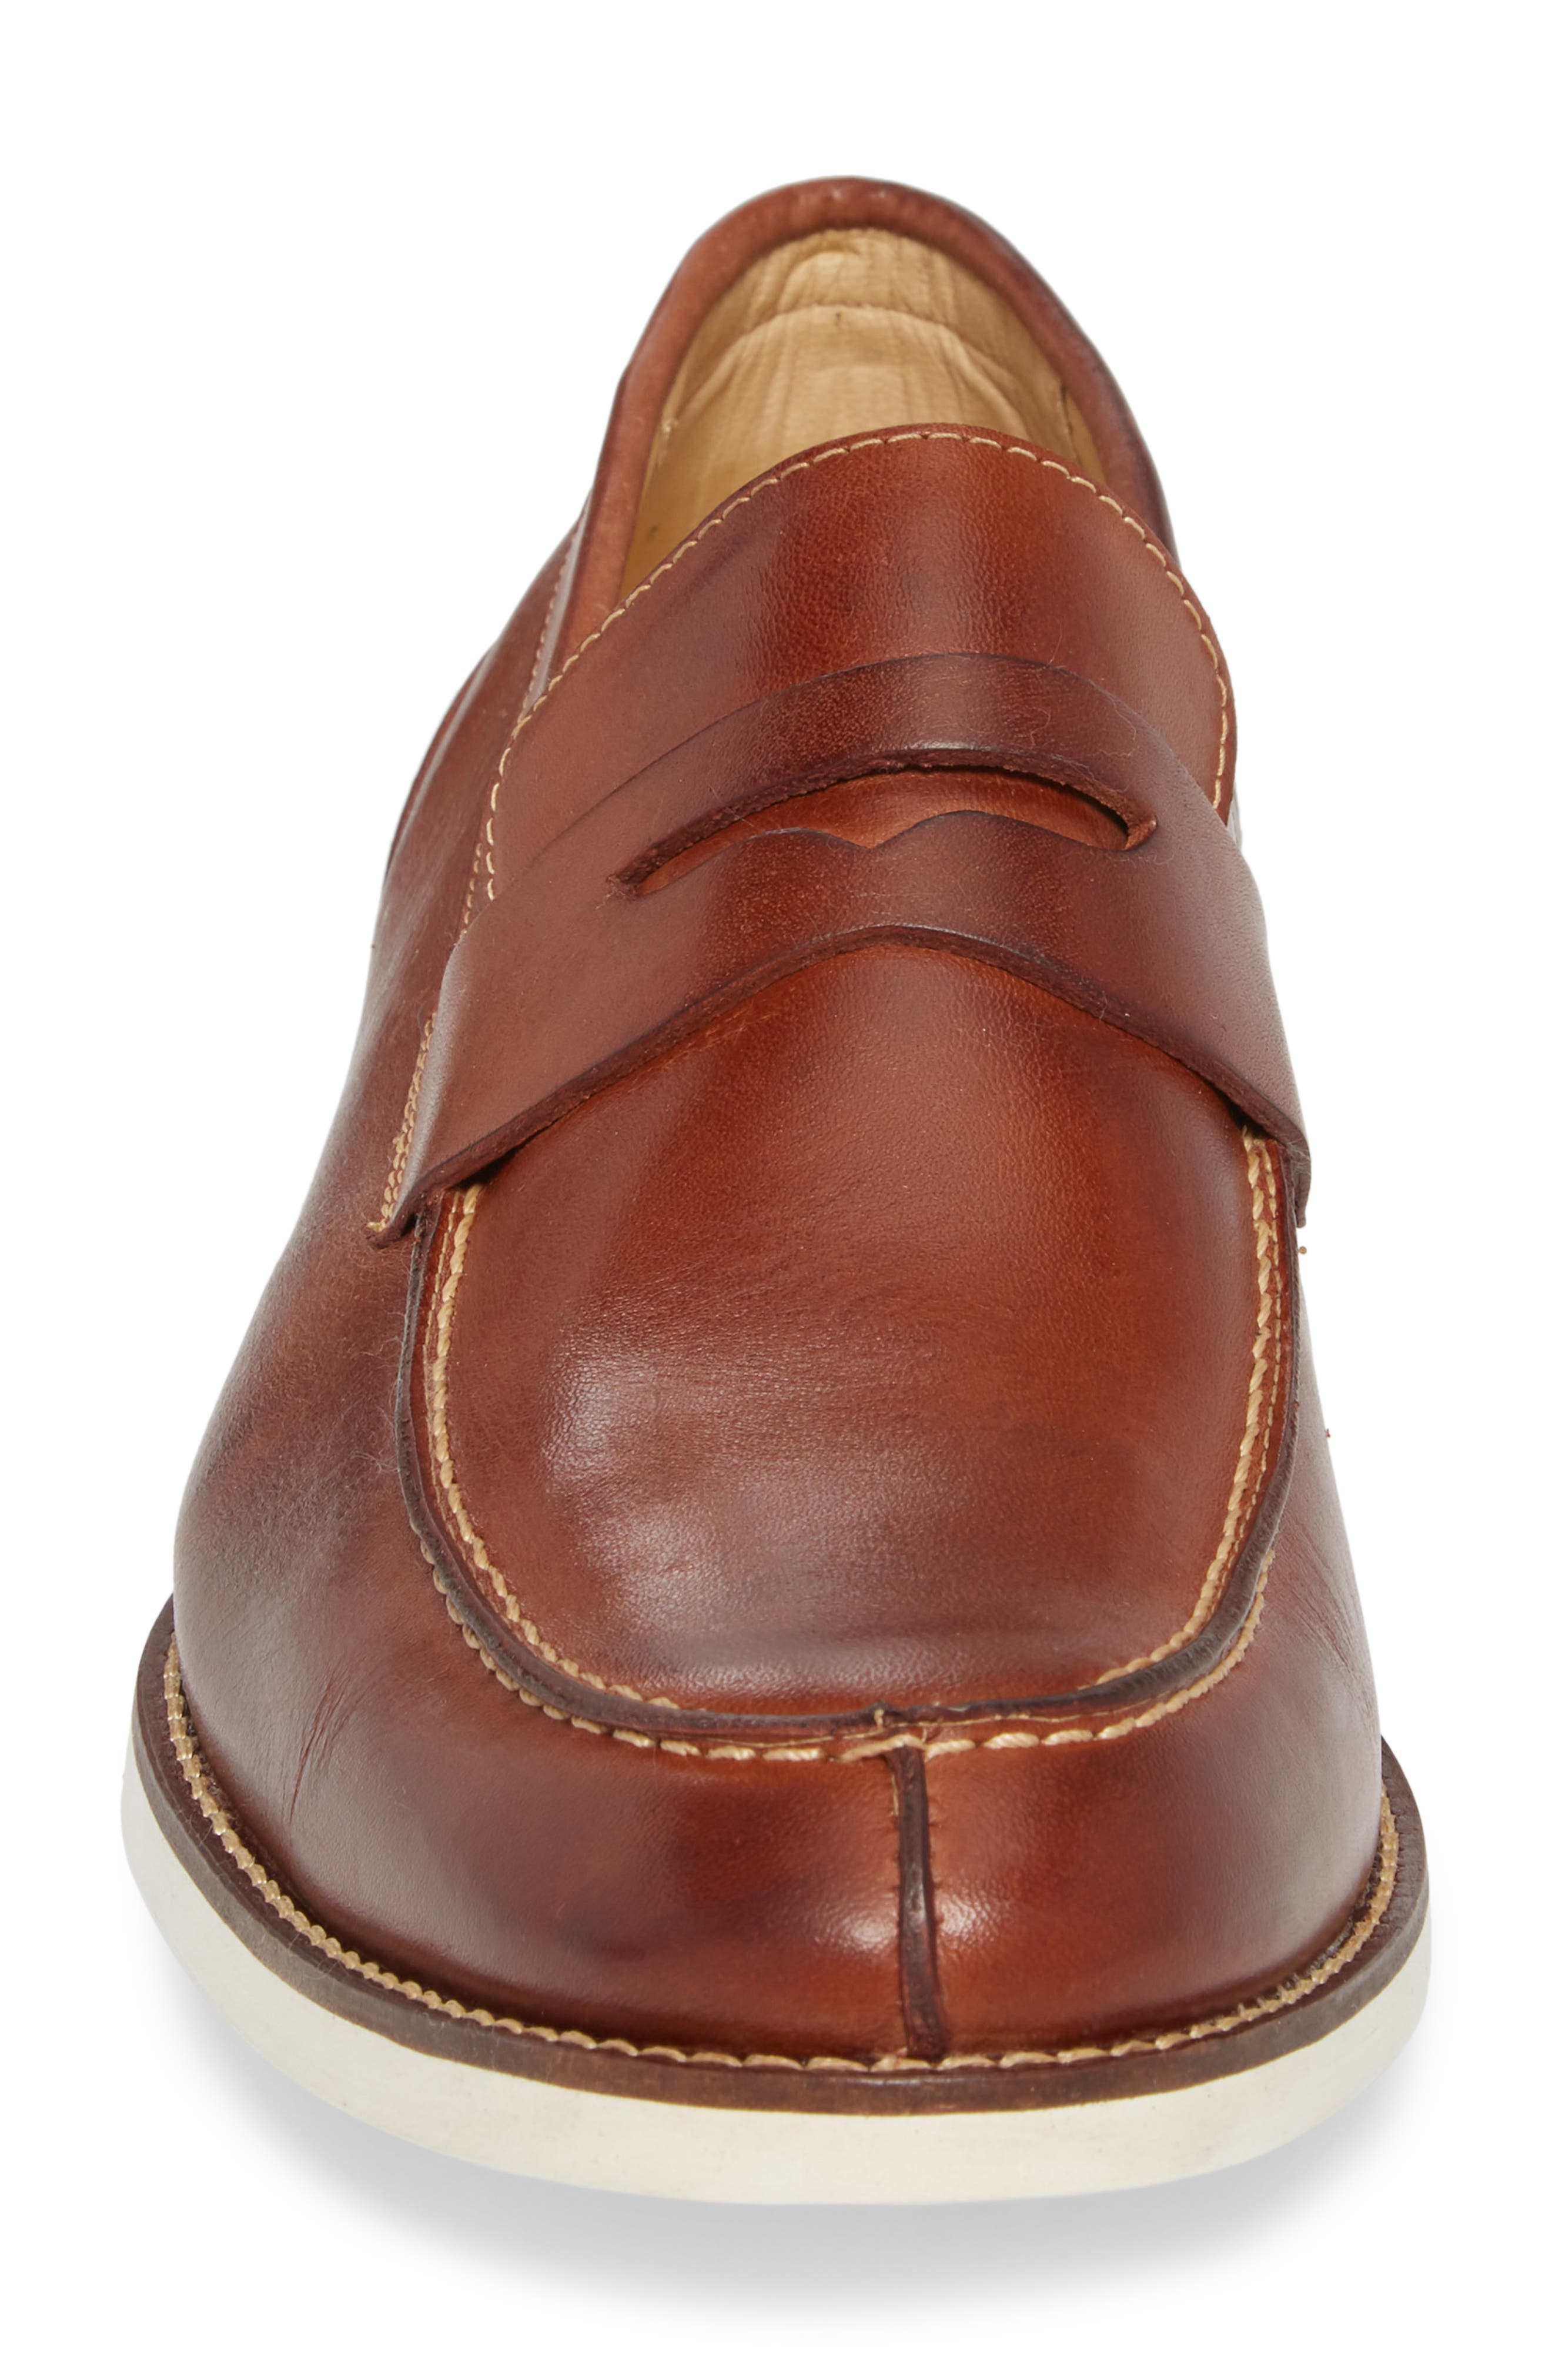 Senador Penny Loafer,                             Alternate thumbnail 4, color,                             Touch Havana Leather